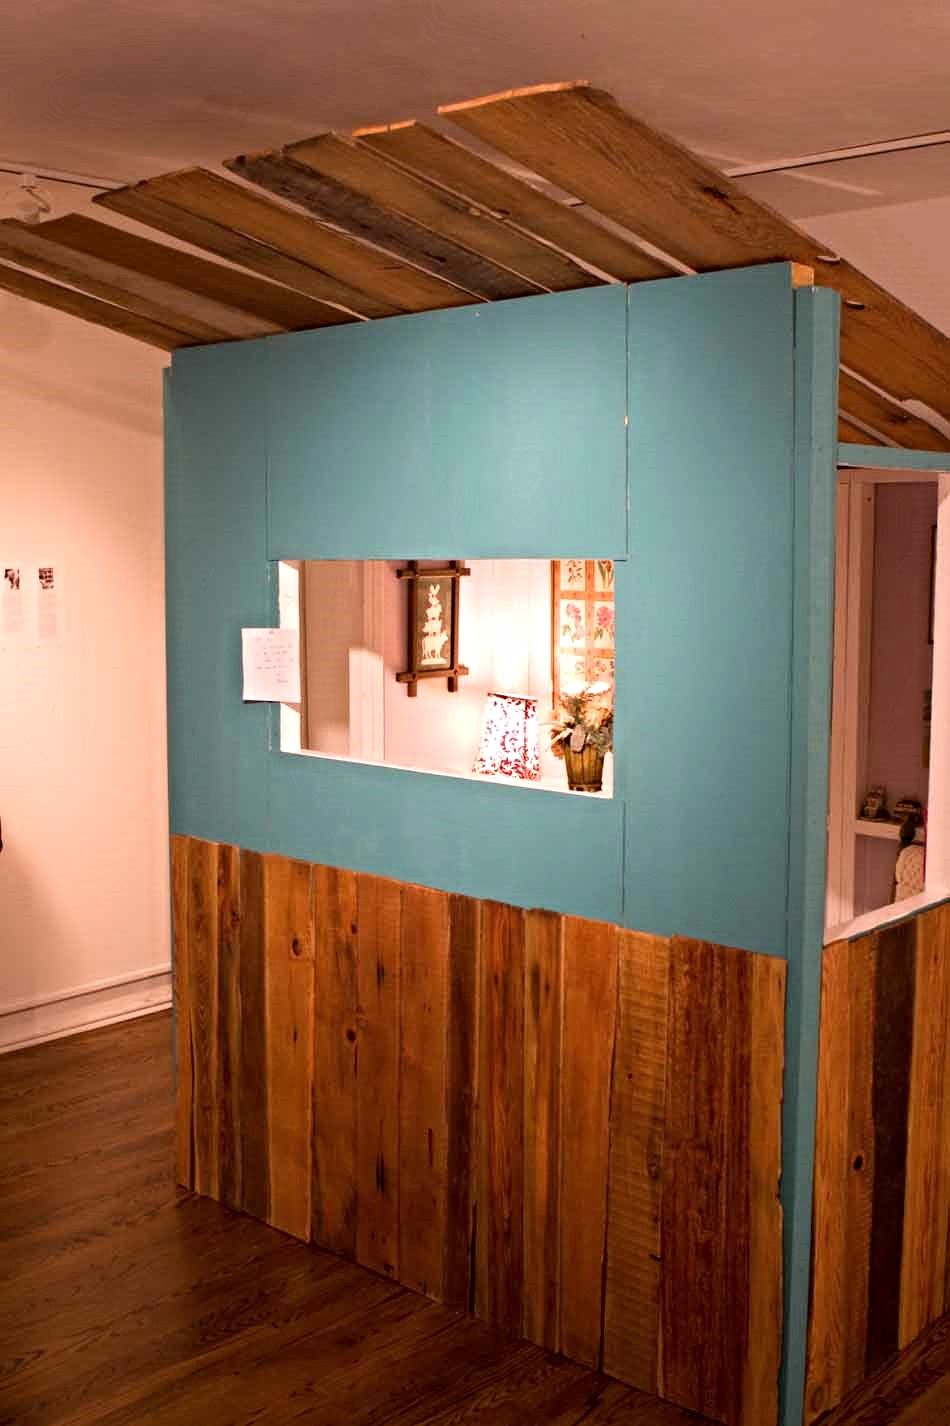 Kiosk: Rent-a-Grandma, 2012, exterior, installation at the Philadelphia Art Alliance, collaboration with Amy Linsenmayer